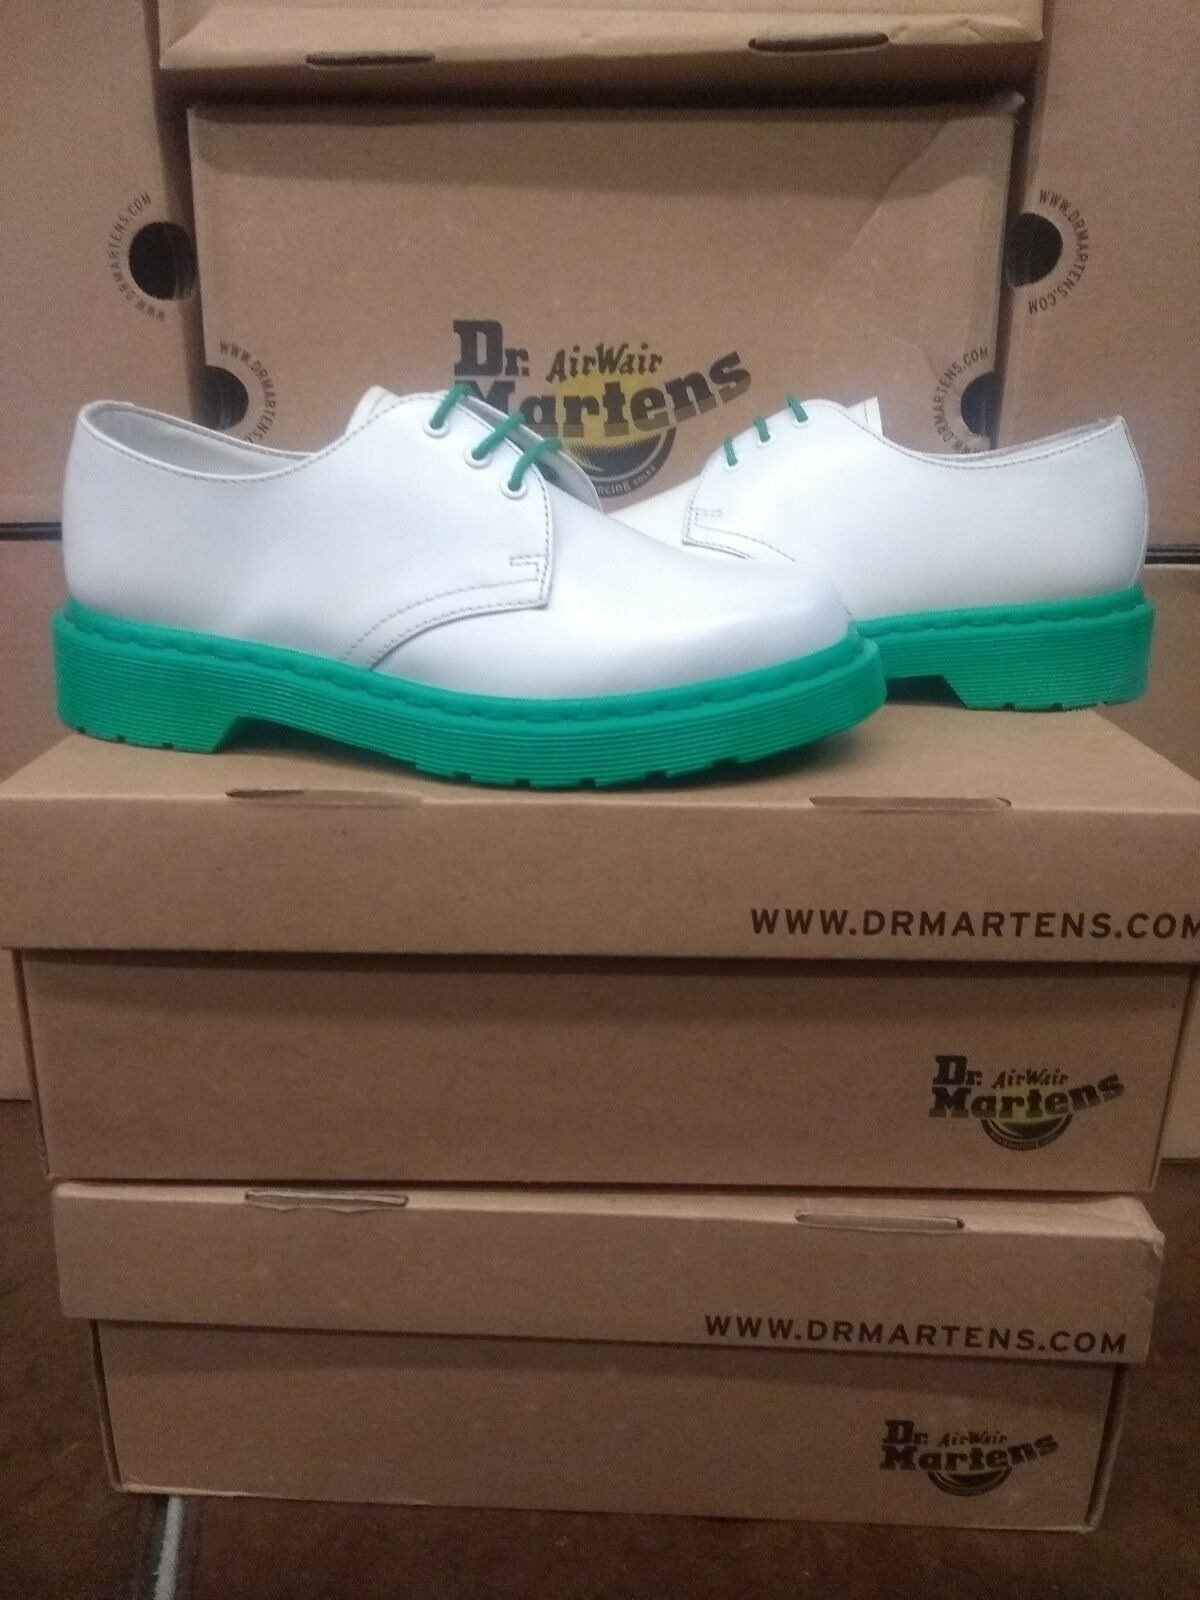 DR MARTENS 1461 LEATHER/GREEN WHITE LEATHER/GREEN 1461 SOLE SIZE 7 70e8c3